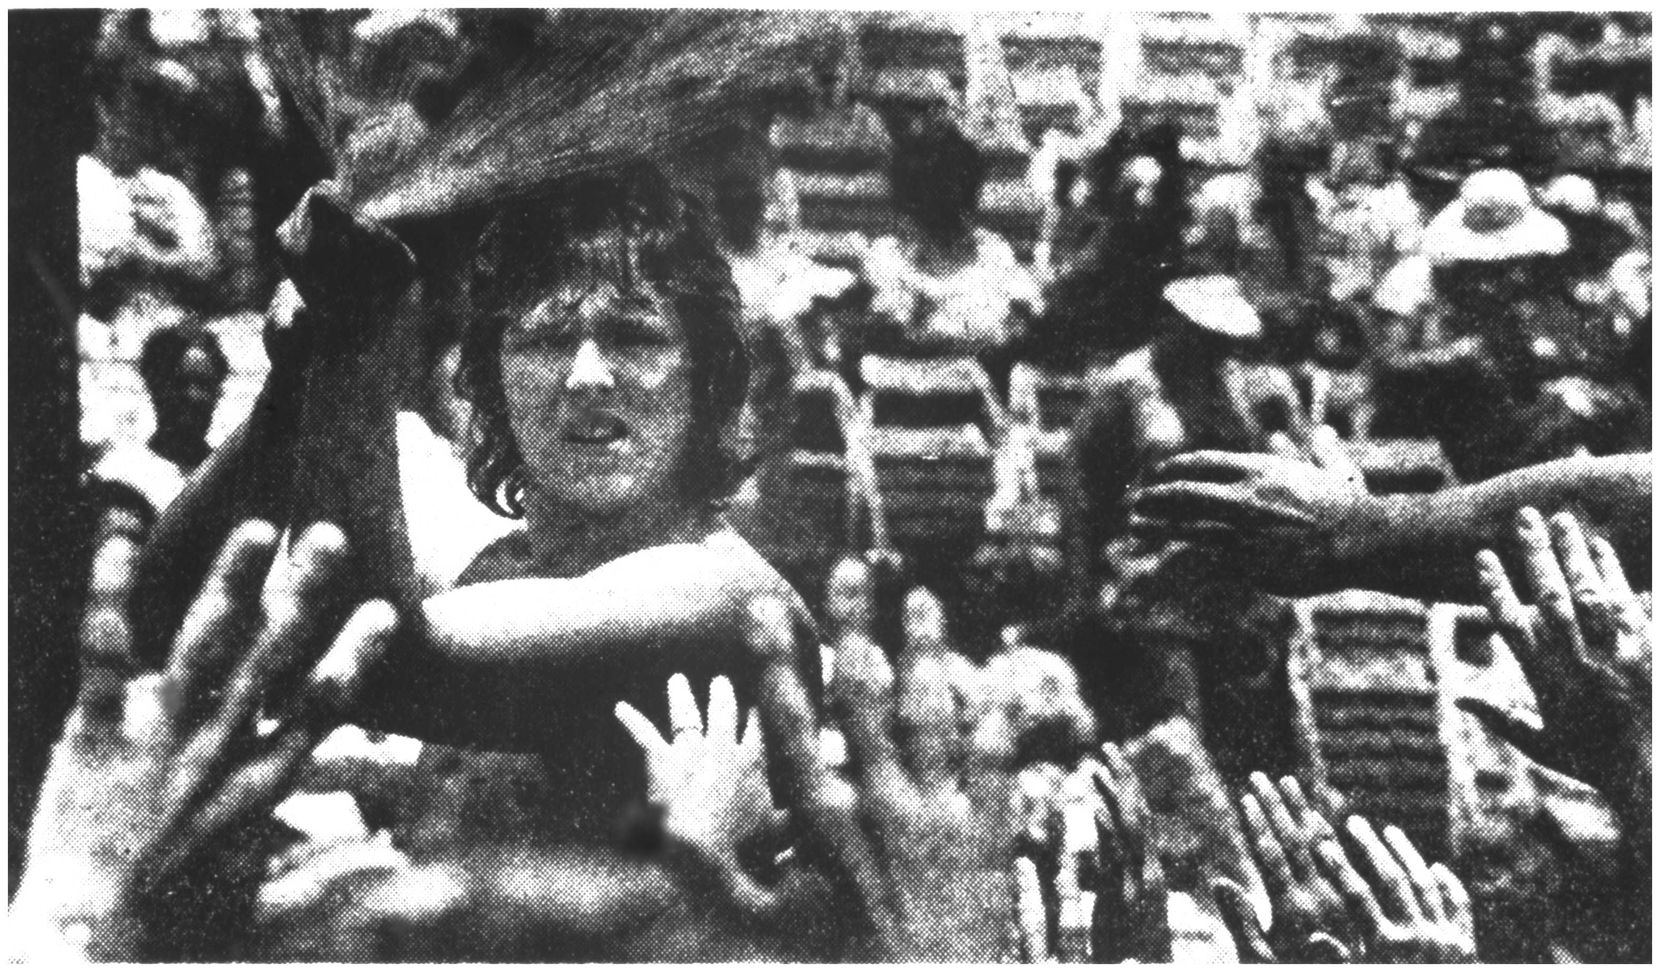 A concertgoer sprays water to help keep the crowd cool during the Rolling Stones' July 6, 1975, concert at the Cotton Bowl. More than 50,000 people attended the outdoor show despite triple-digit temperatures.